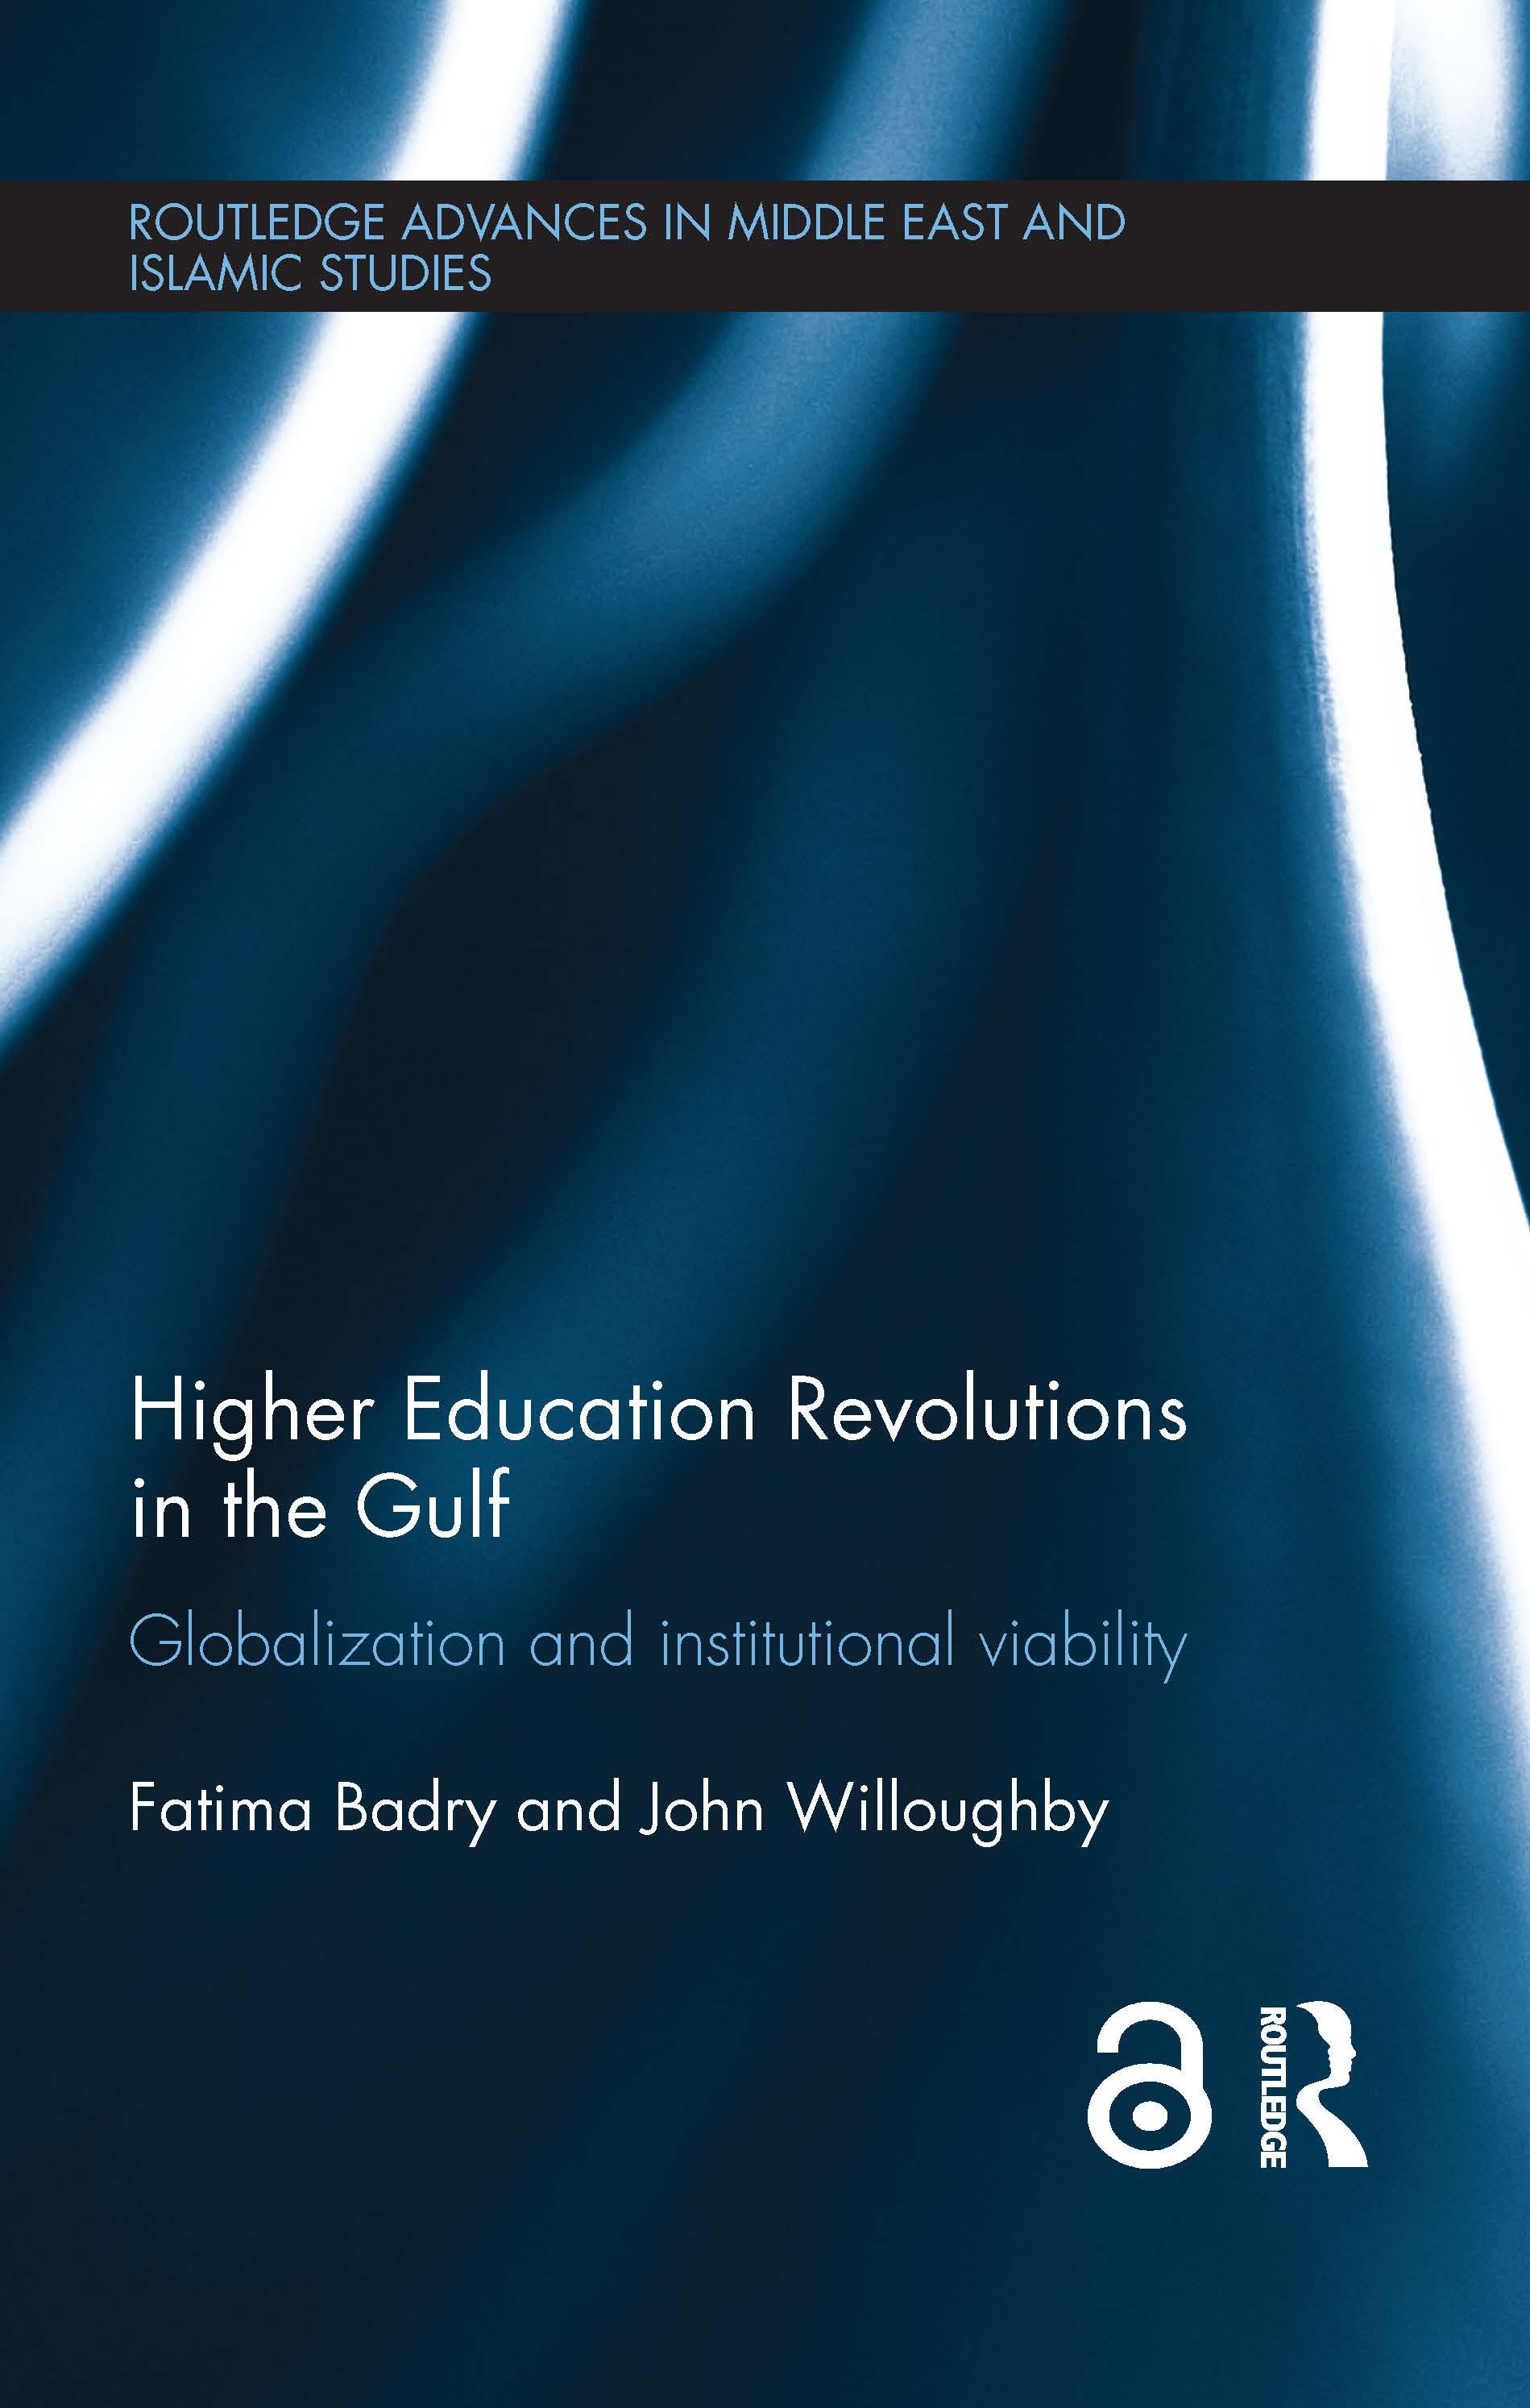 Higher Education Revolutions in the Gulf: Globalization and Institutional Viability book cover